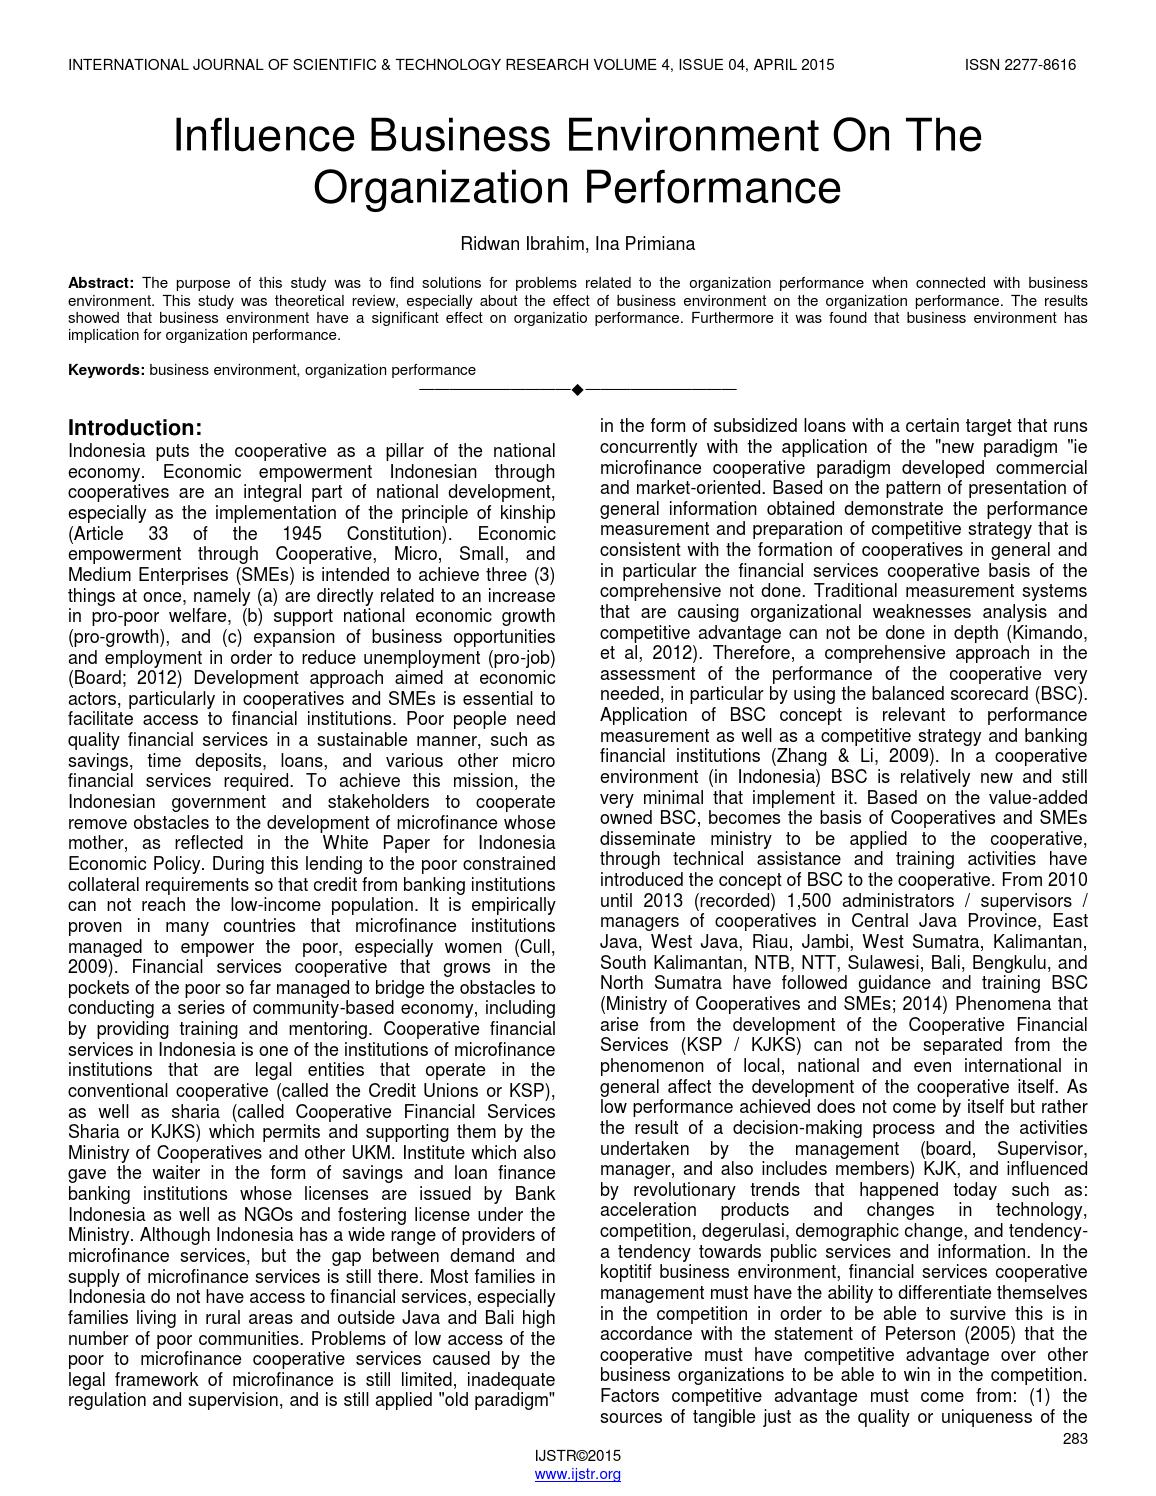 international business environment on organisational performance International journal of business performance management from inderscience publishers covers hard and soft perspectives in performance measurement and management in public and international journal of business performance management organisational learning ethical and environmental.